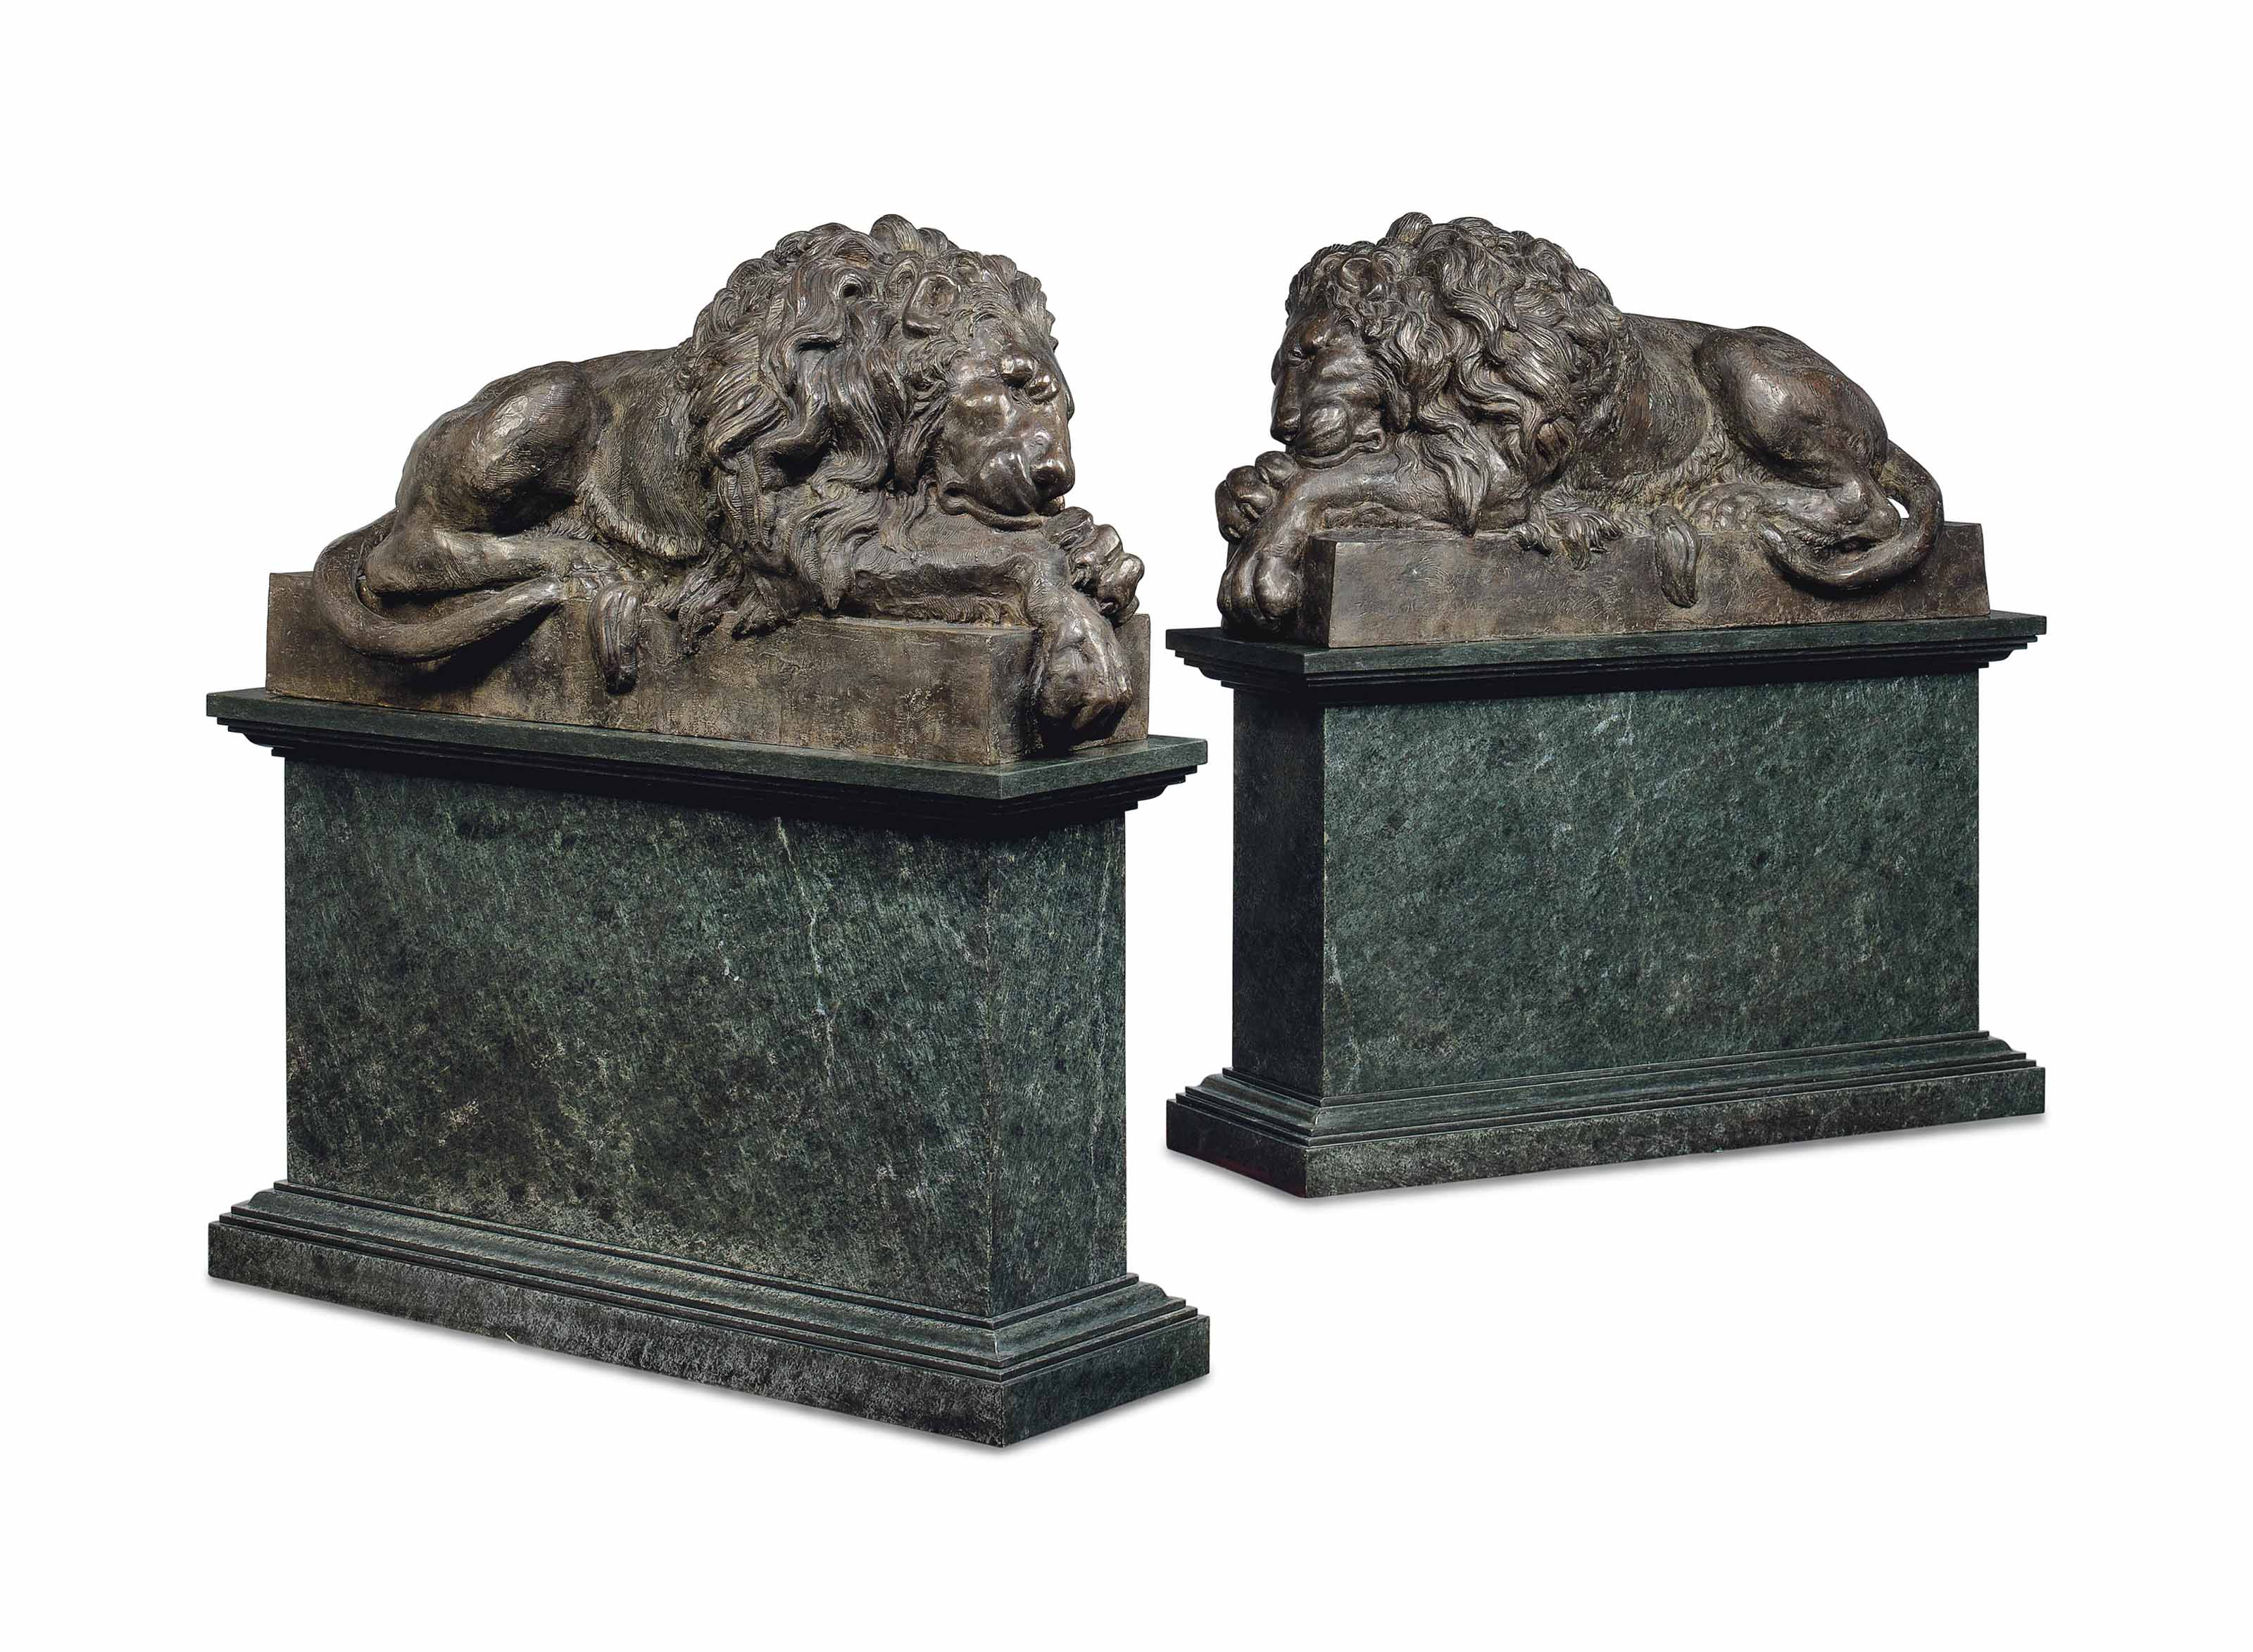 A LARGE PAIR OF BRONZE MODELS OF LIONS